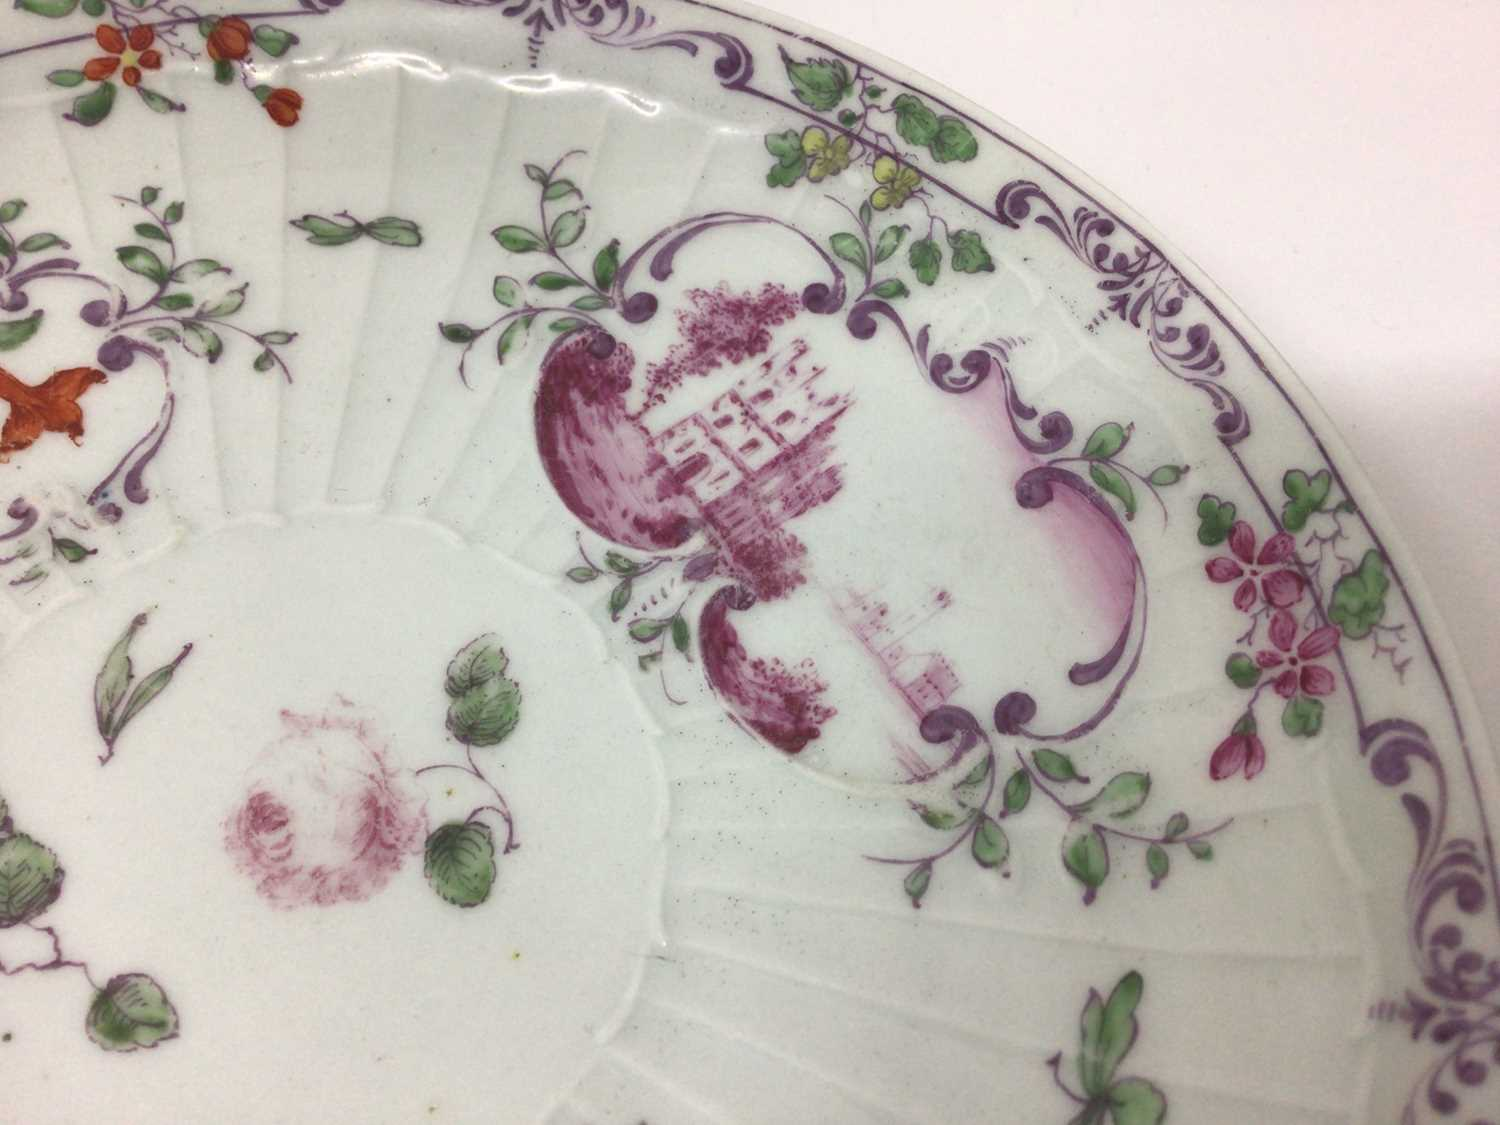 Worcester pleat-moulded saucer dish, circa 1756-58, painted in the Meissen style with puce landscape - Image 2 of 5